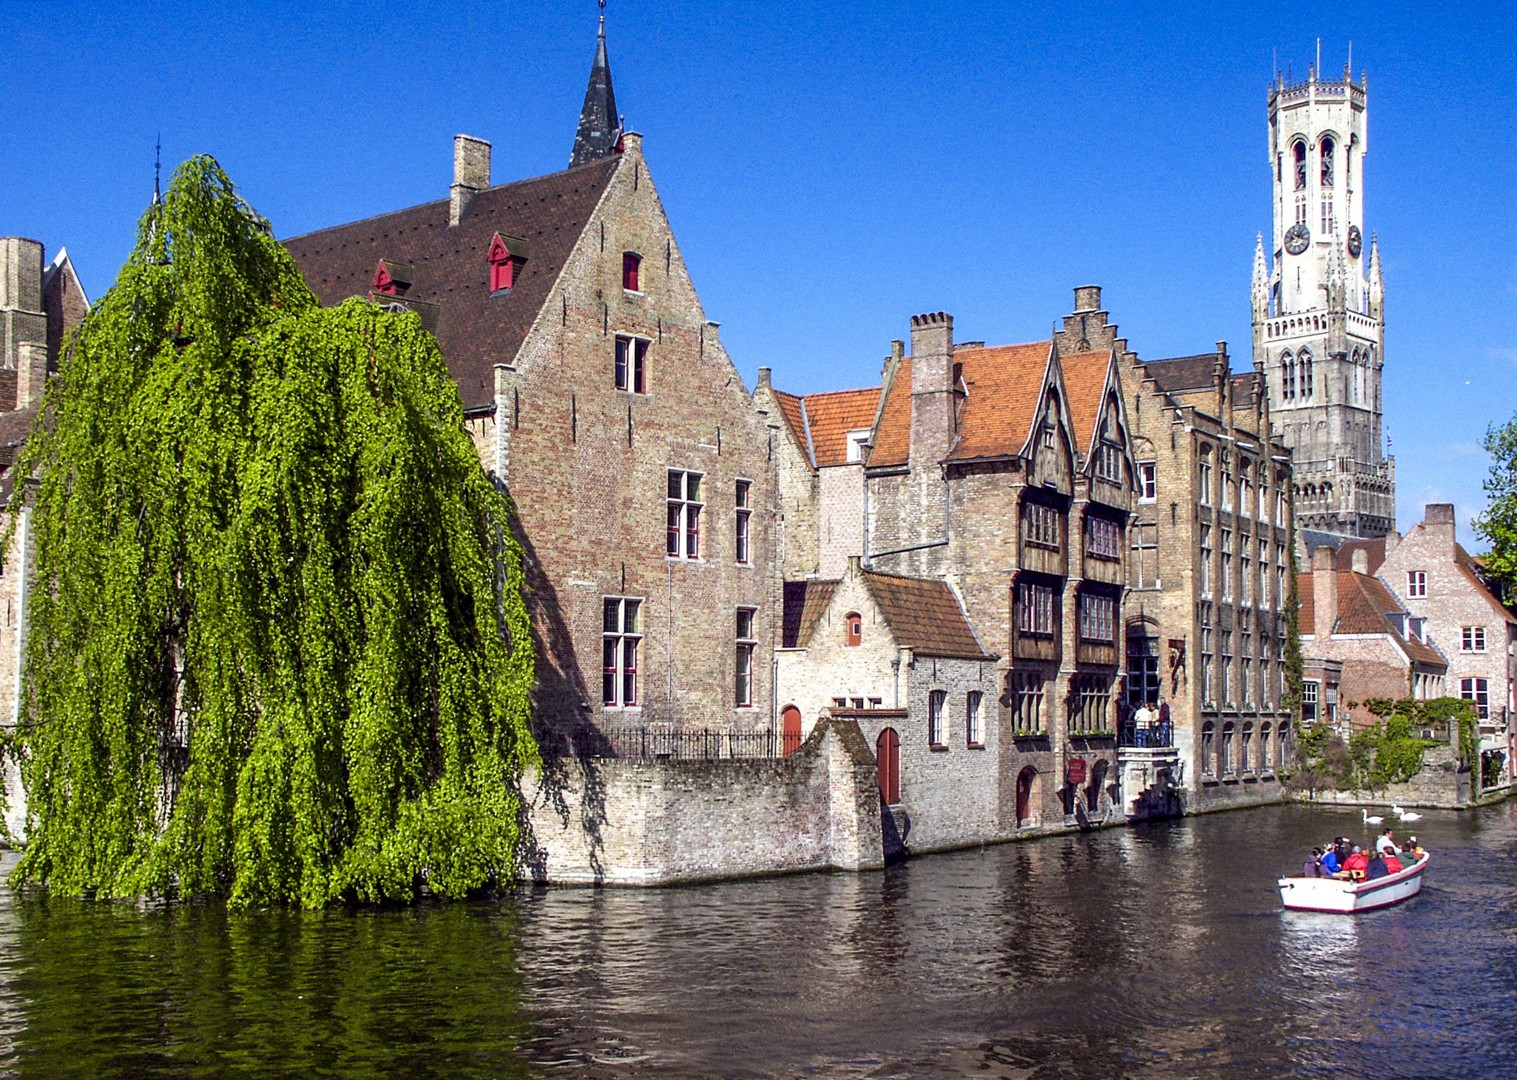 bruges-canals-bike-and-boat-amsterdam-skedaddle-comfortable-accommodation.jpg - Holland and Belgium - Bruges to Amsterdam - Bike and Barge Holiday - Leisure Cycling